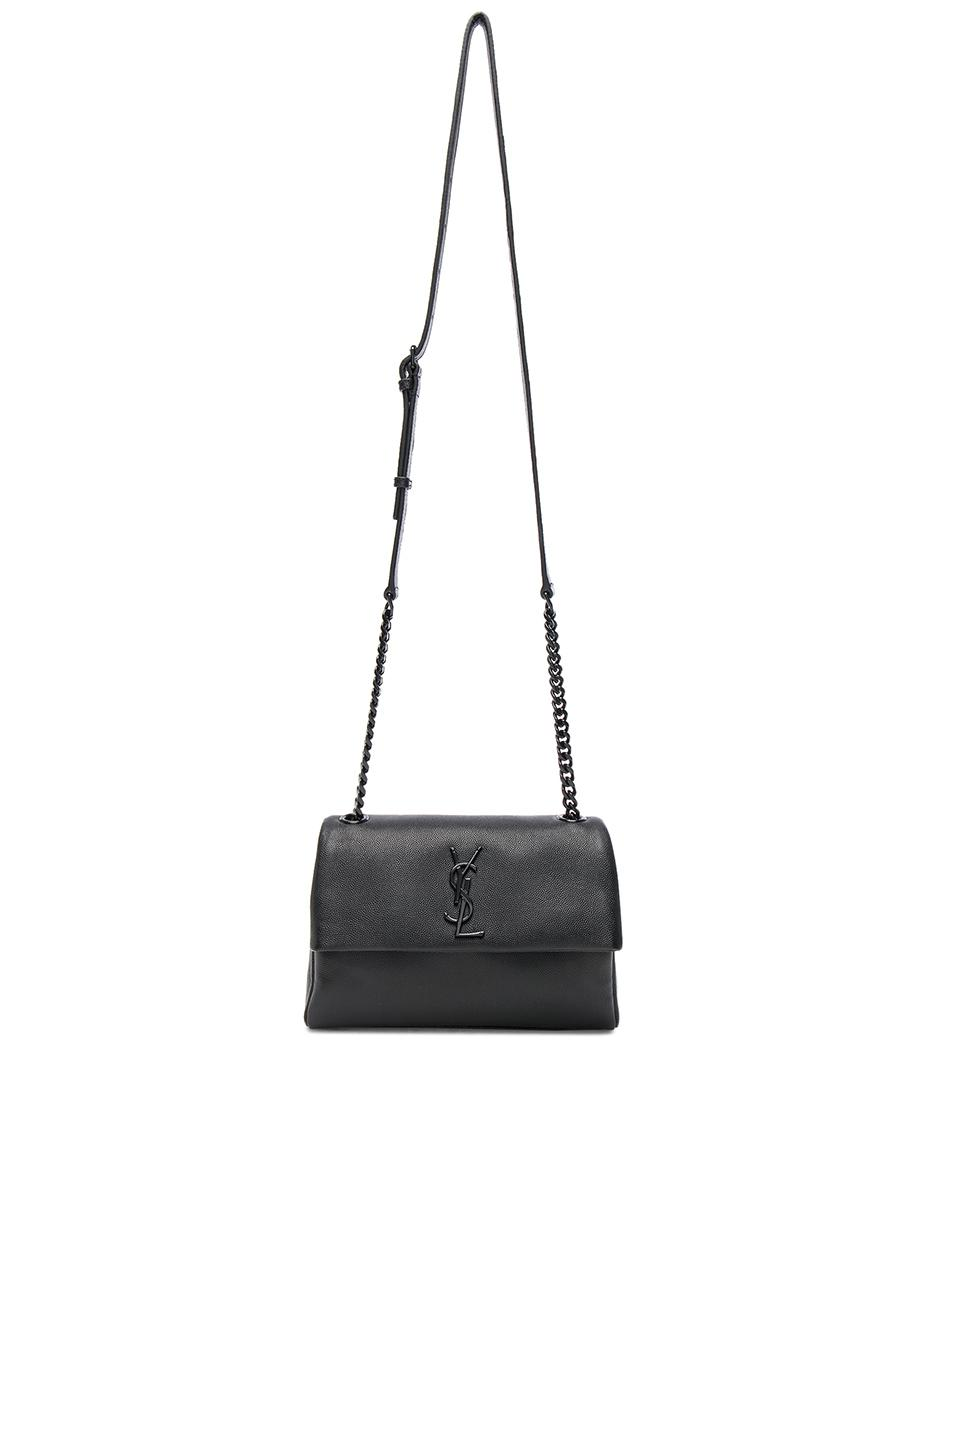 2d81d4603a96 Saint Laurent Small Supple Monogramme West Hollywood Bag in Black - Lyst